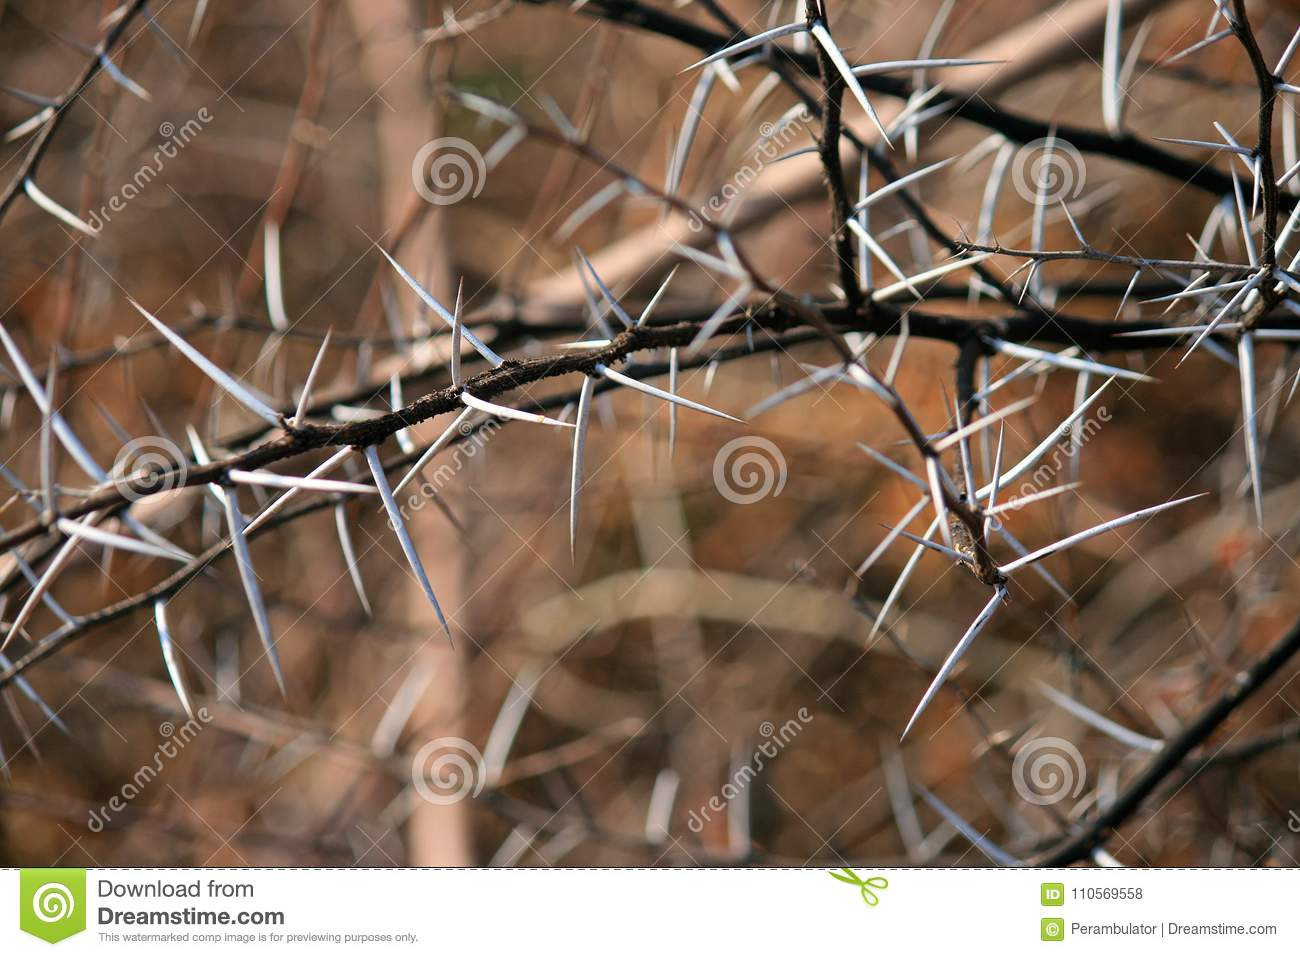 BRANCHES WITH LONG WHITE SHARP THORNS